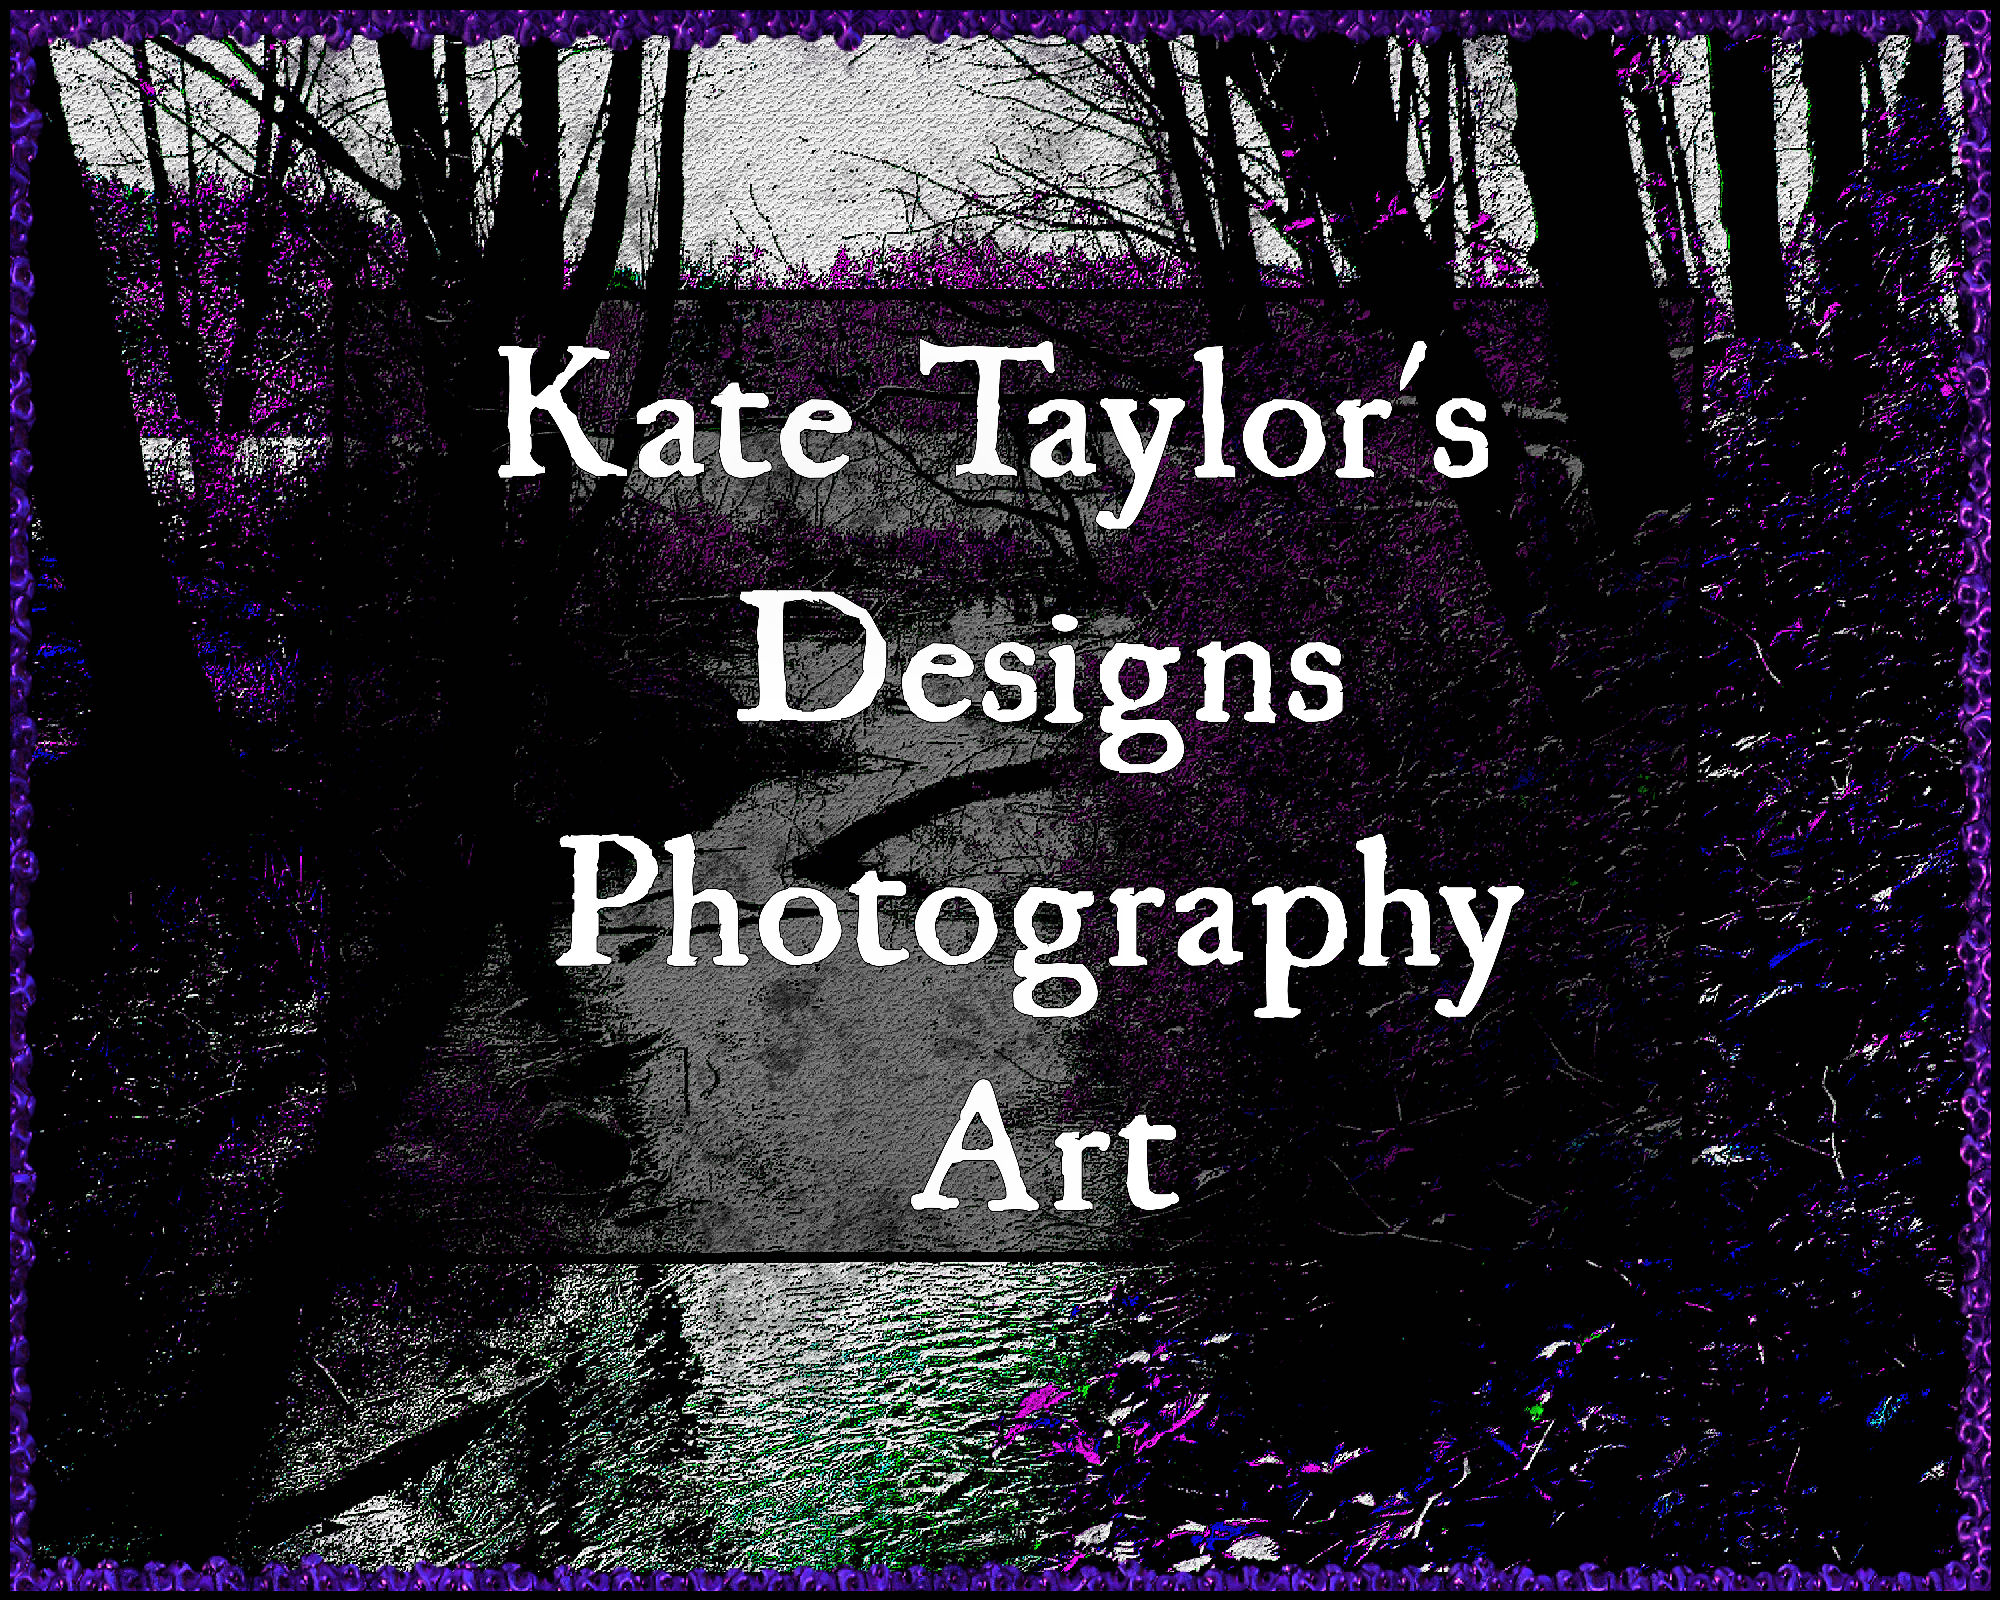 Kate Taylor's Designs, Photography, and Art